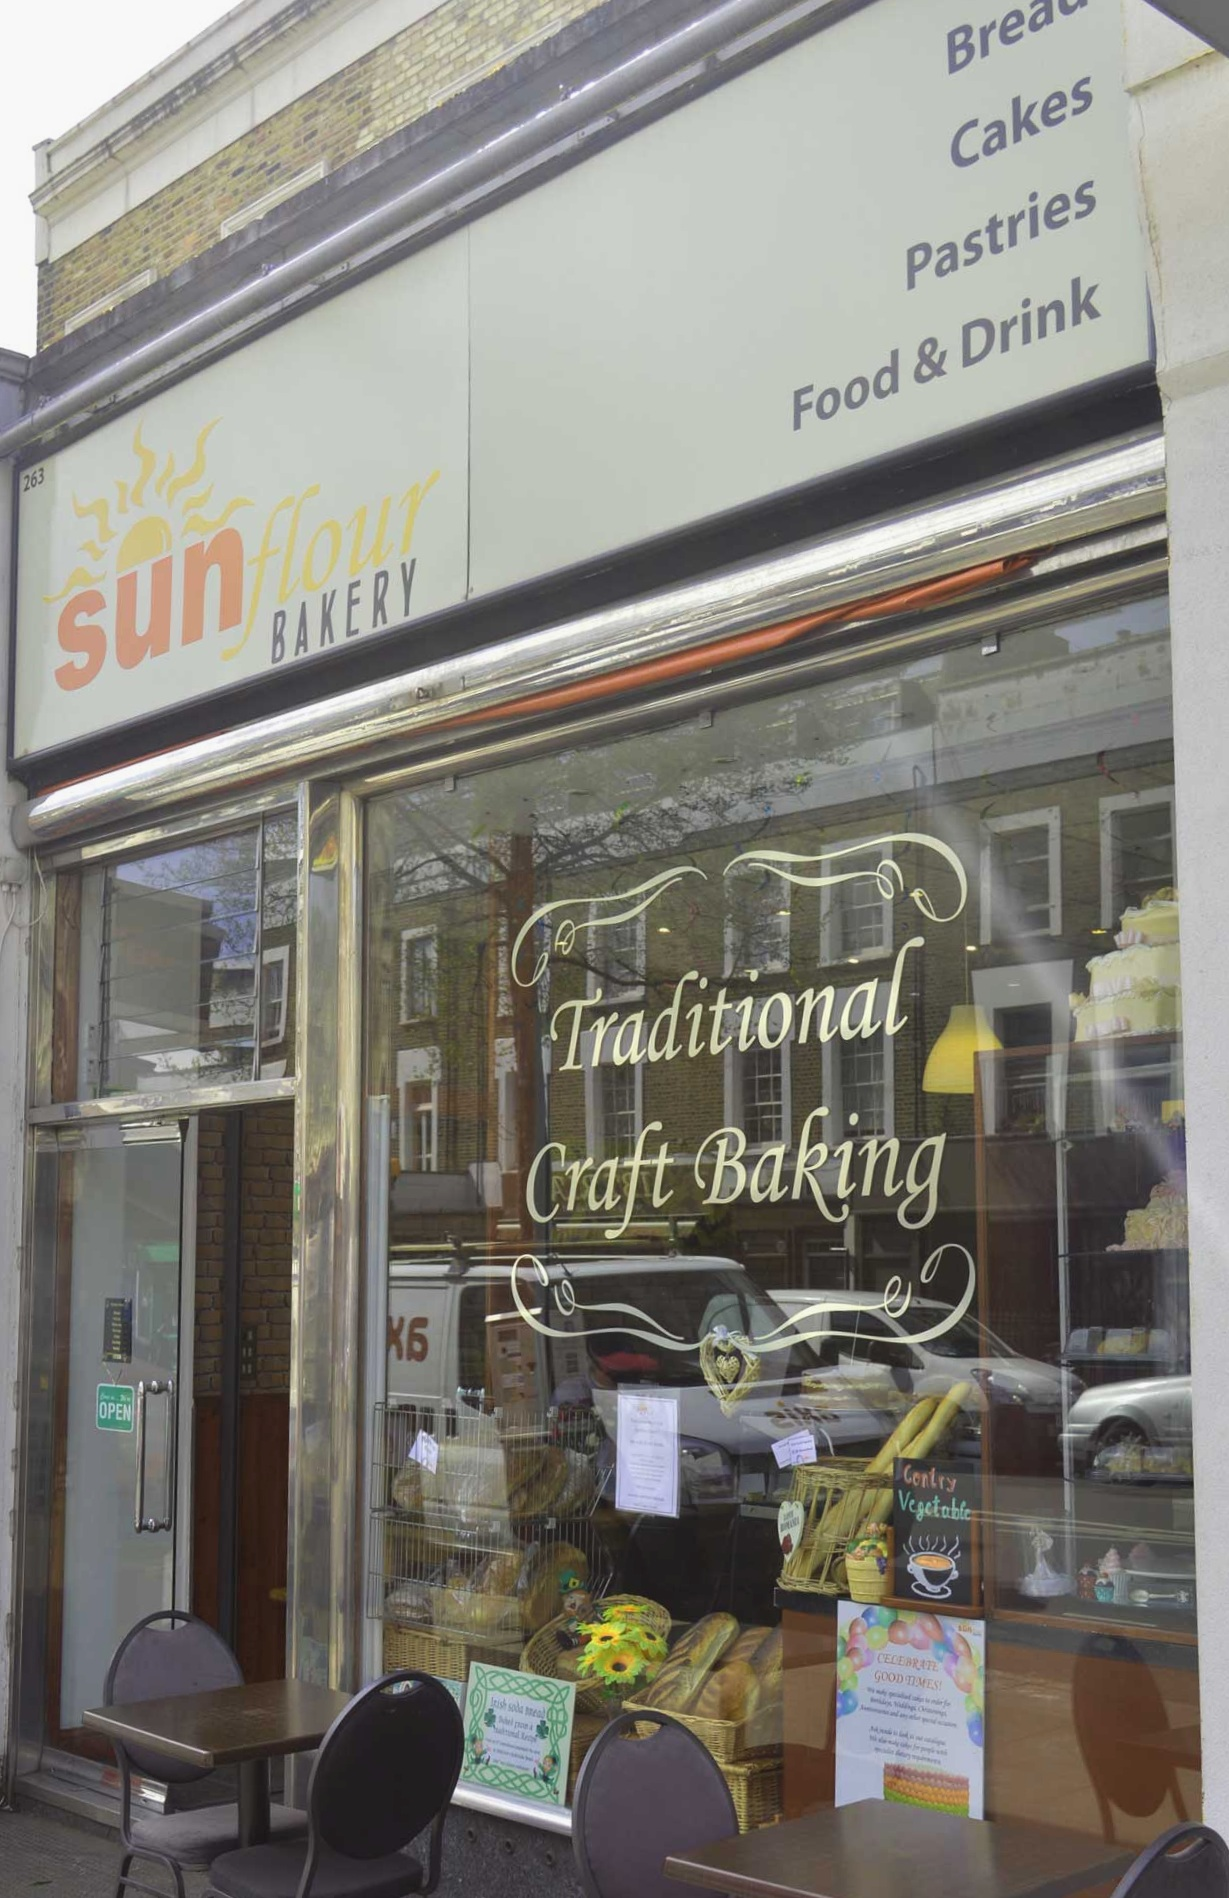 Our bakery and cafe on Caledonian Road.